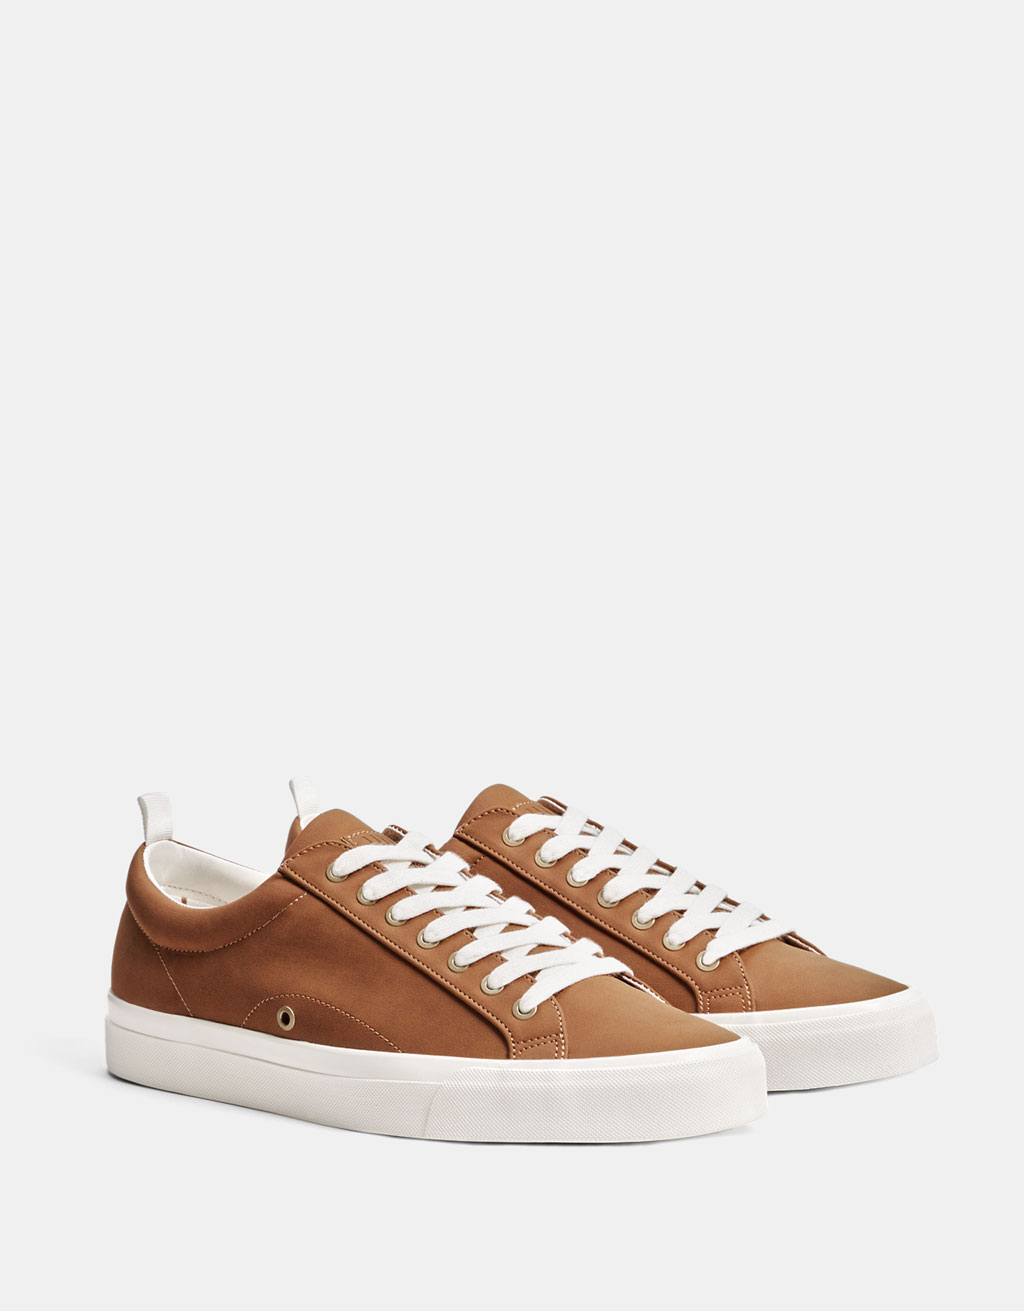 Men's lace-up sneakers